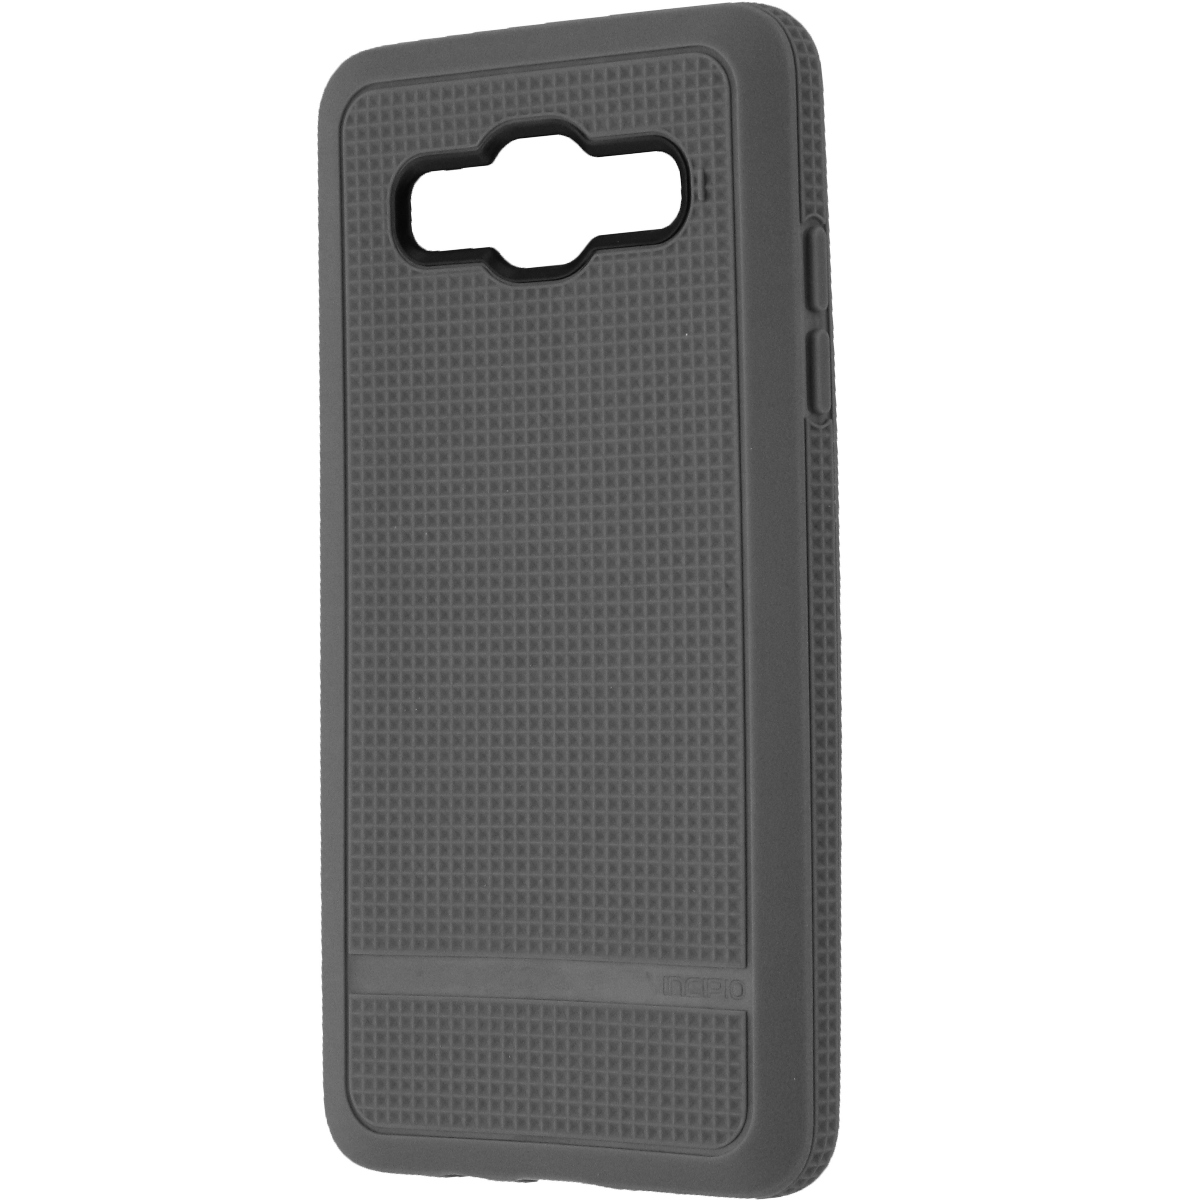 Incipio NGP Advanced Series Rugged Gel Case Cover for Samsung Galaxy On5 - Gray